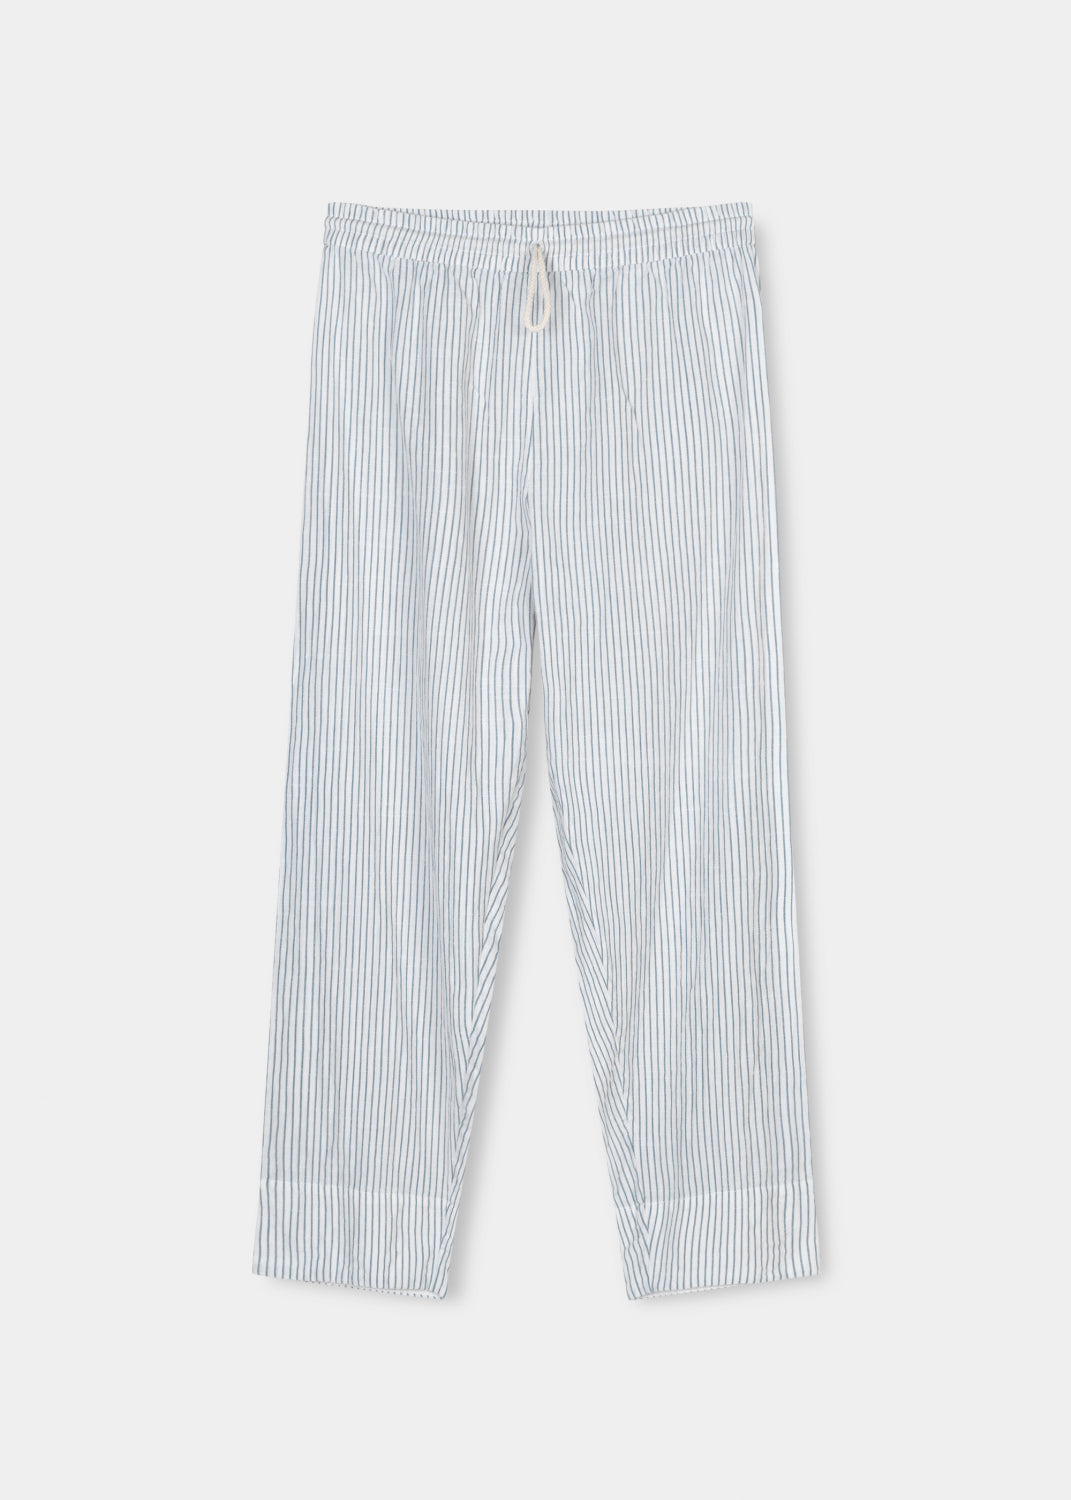 Lilja Pant Striped, Iceland